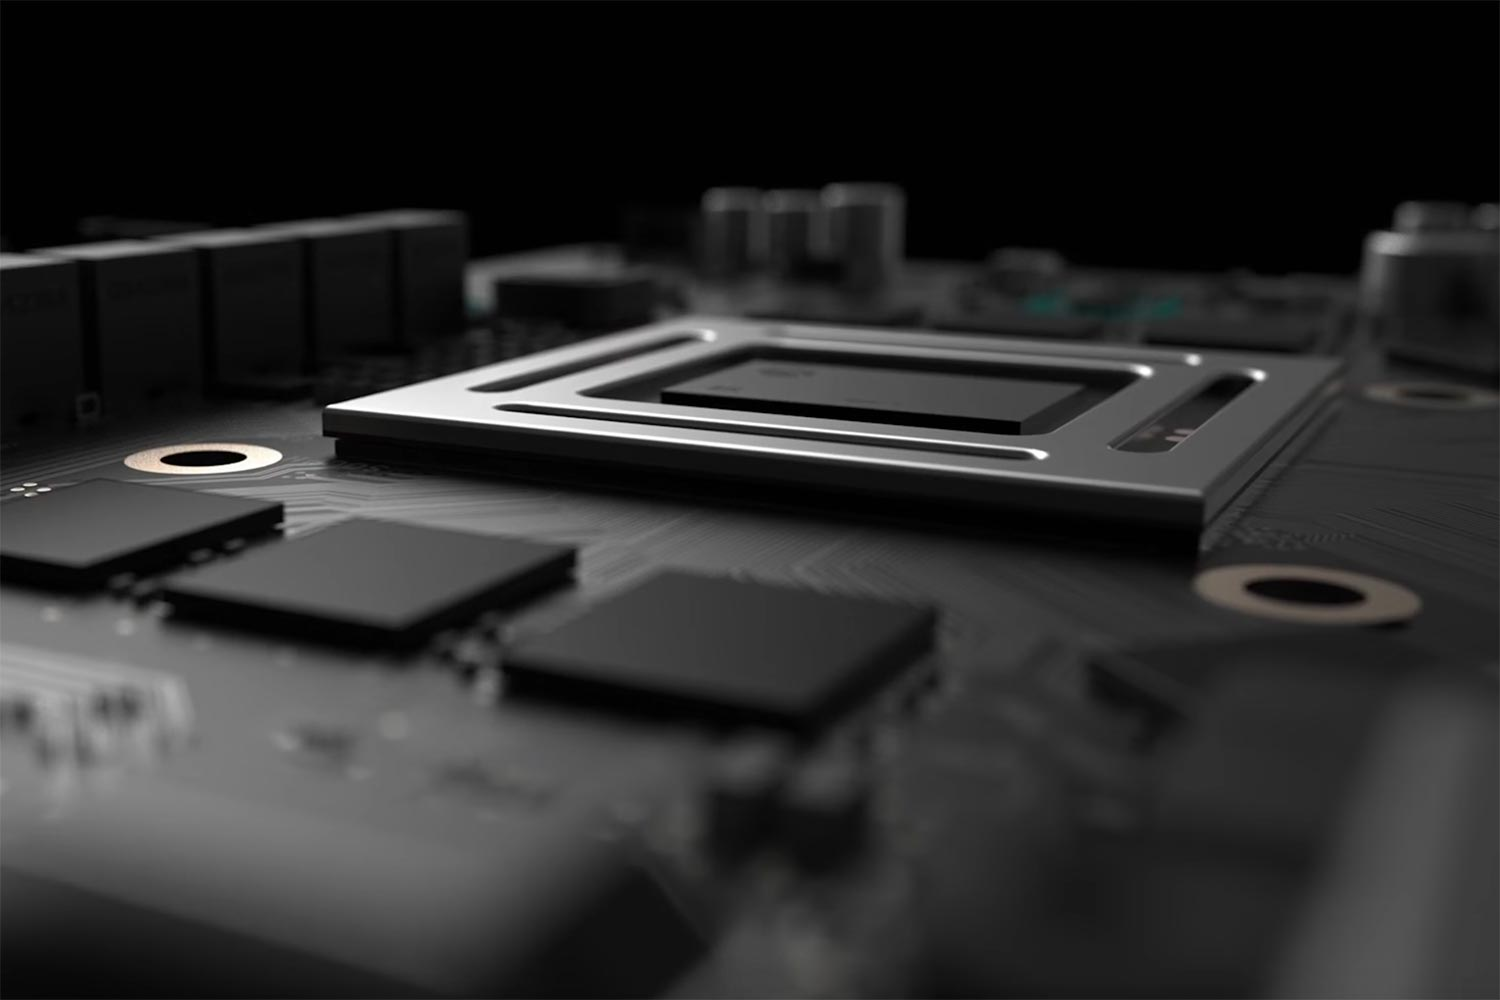 Microsoft to officially reveal Project Scorpio at E3 2017